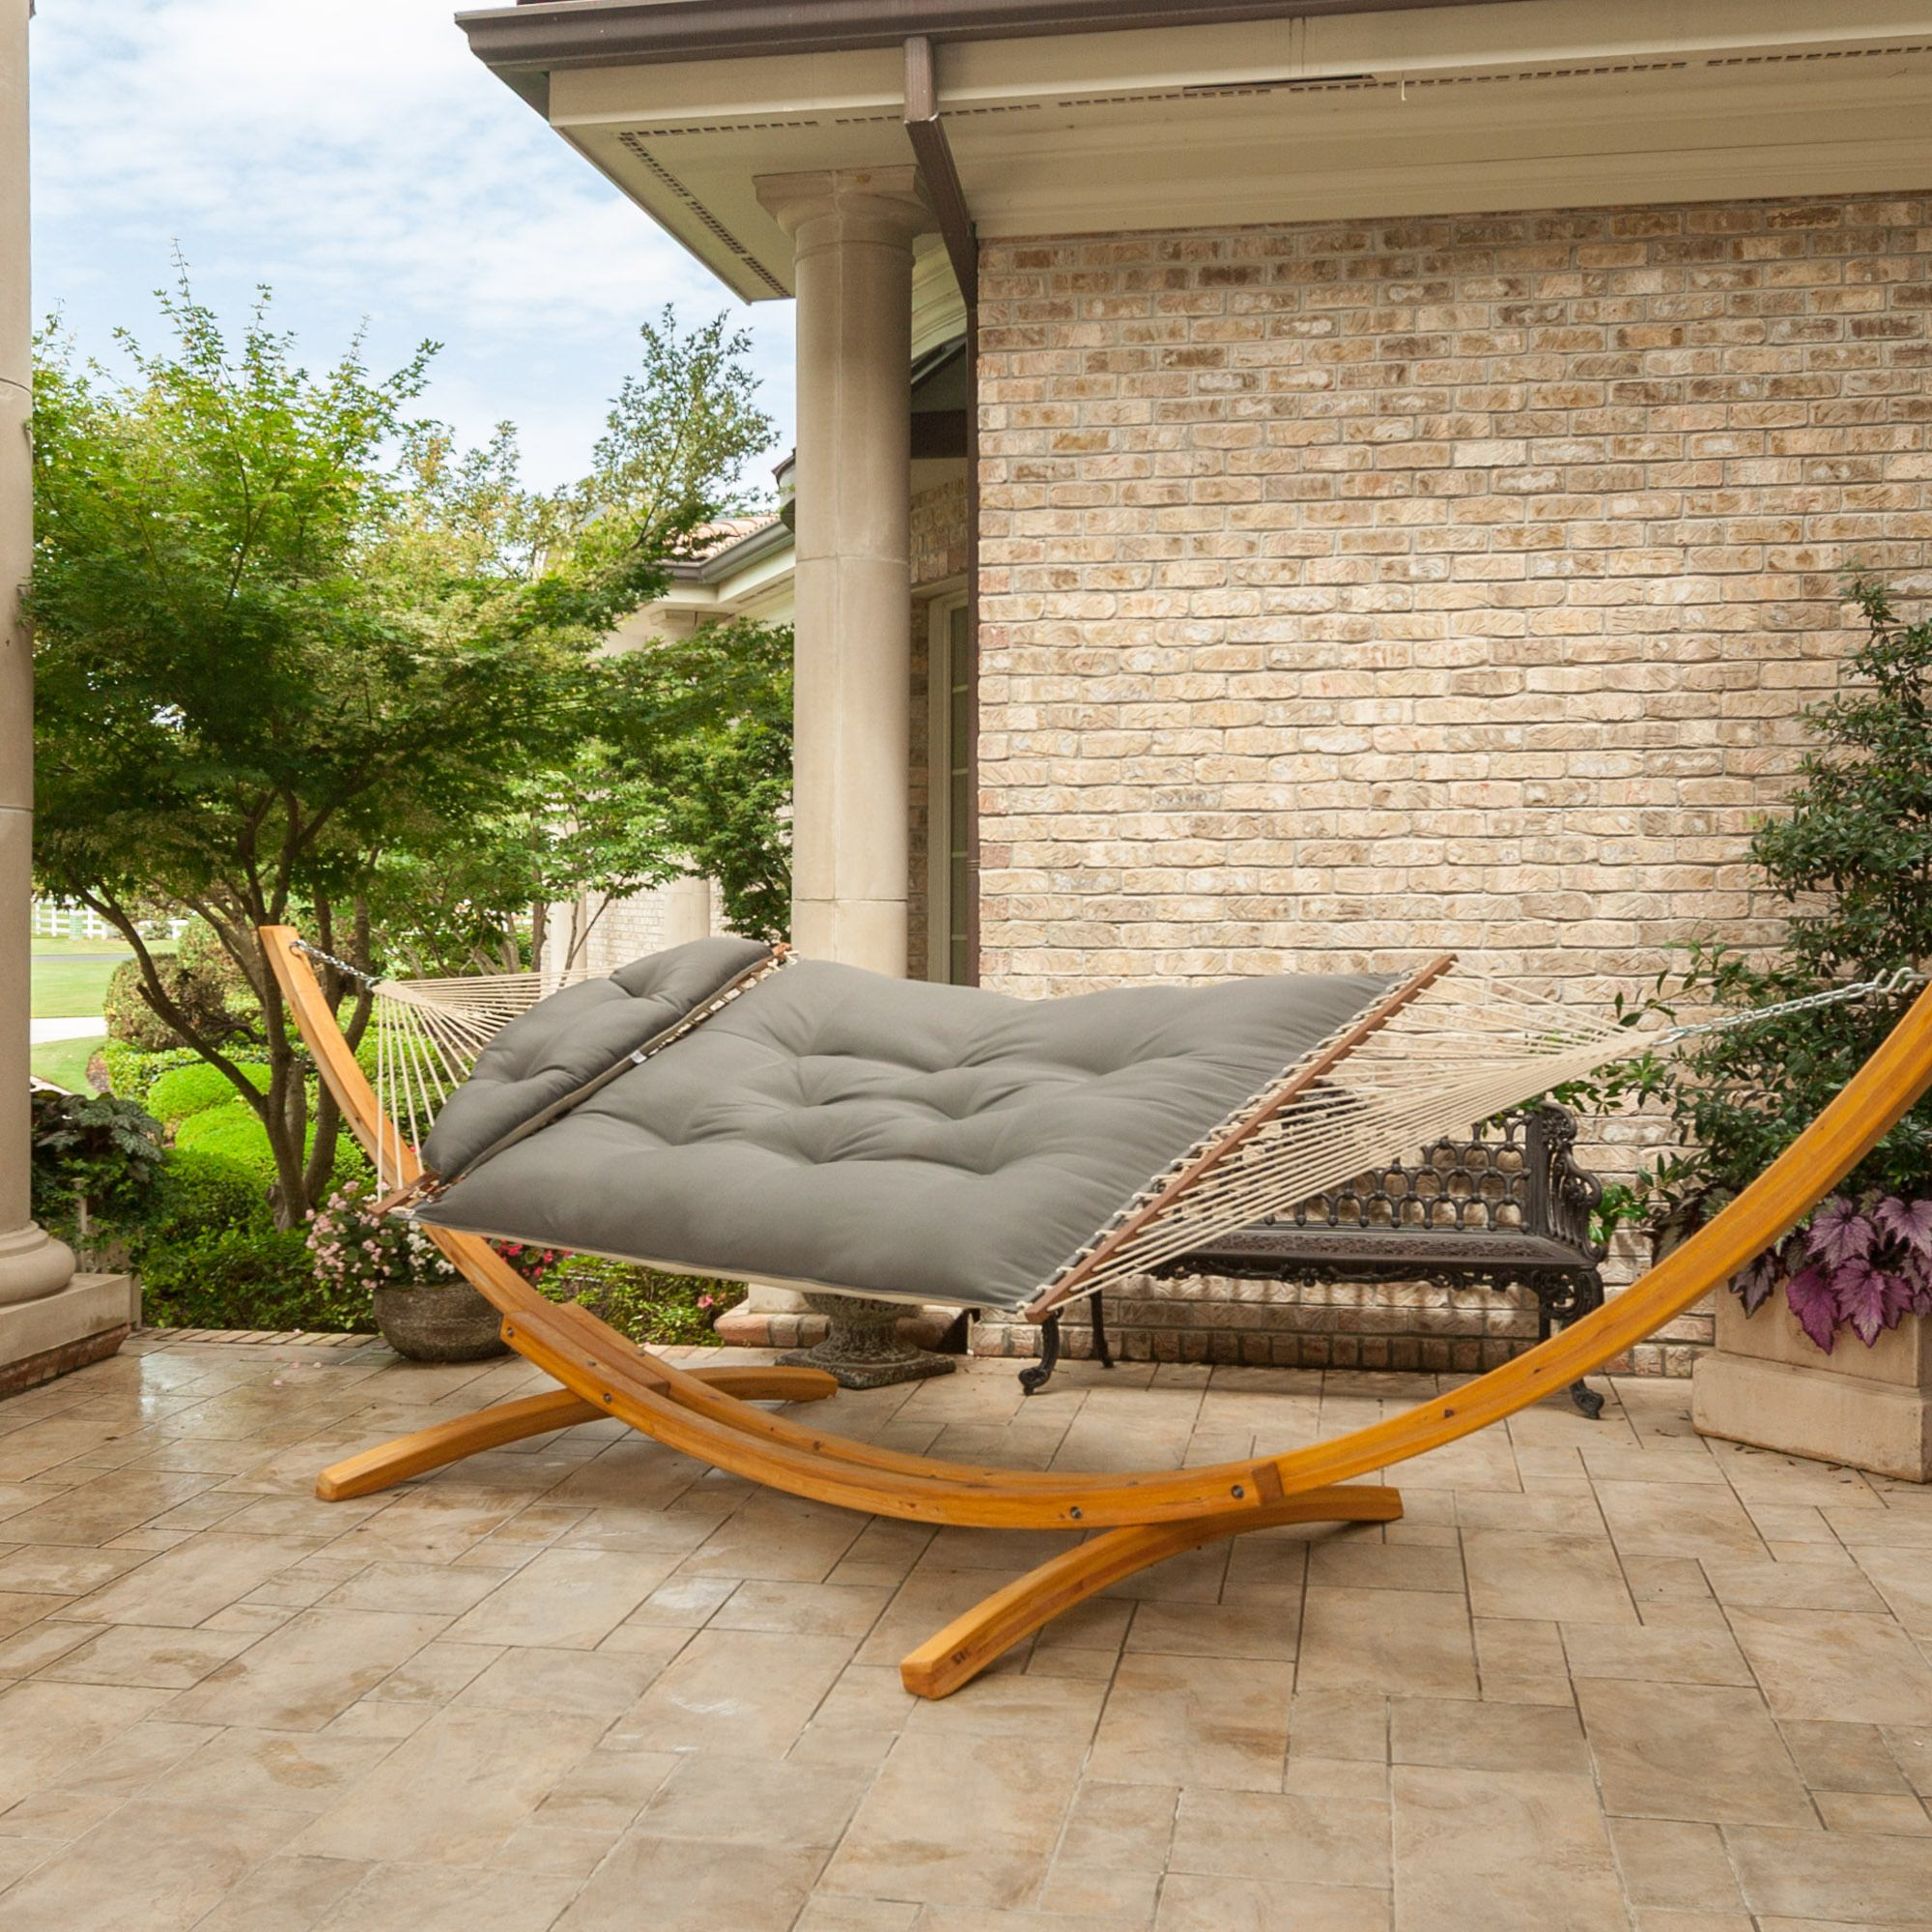 Tufted Hammock Spectrum Dove Discontinued